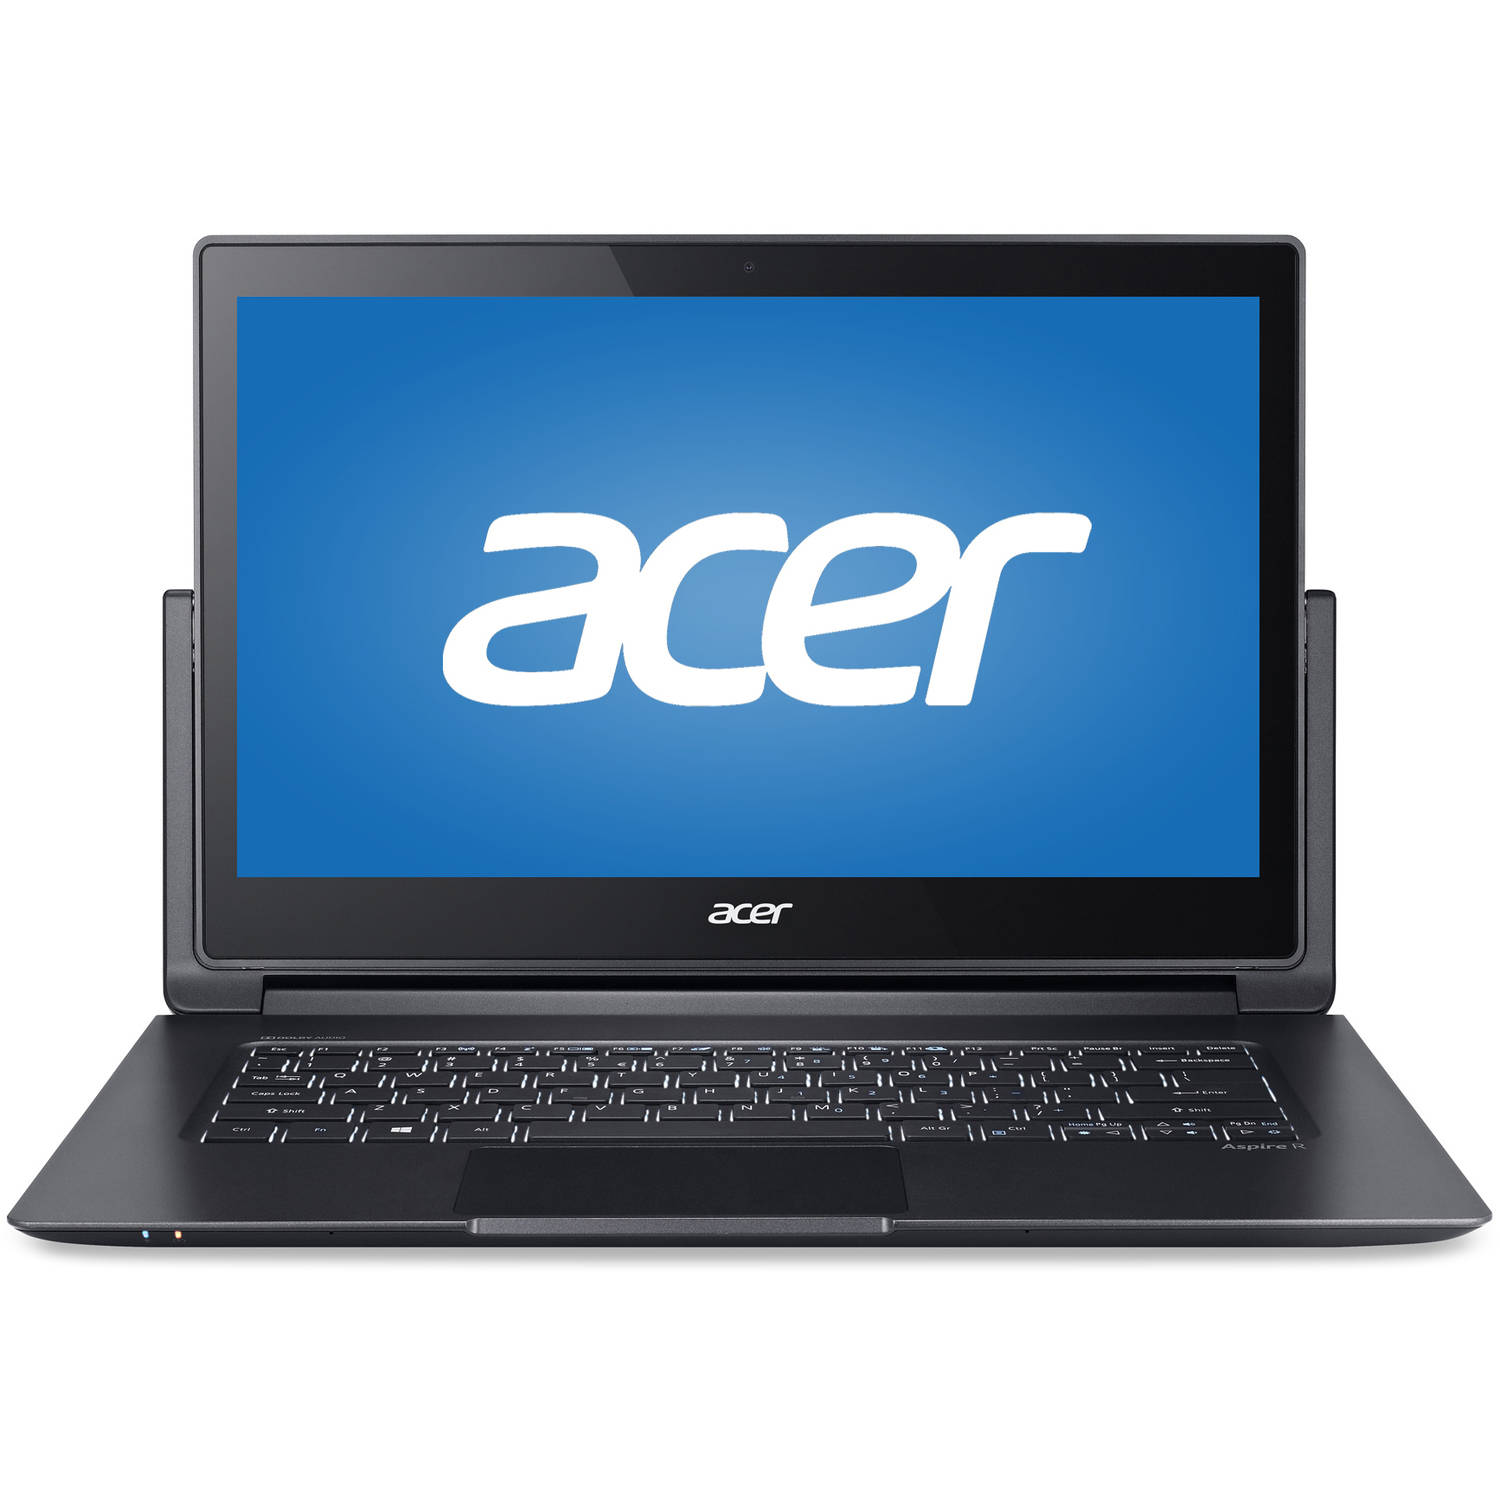 Acer Aspire R7-372T-74B3 13.3 Touchscreen LCD Notebook - ...